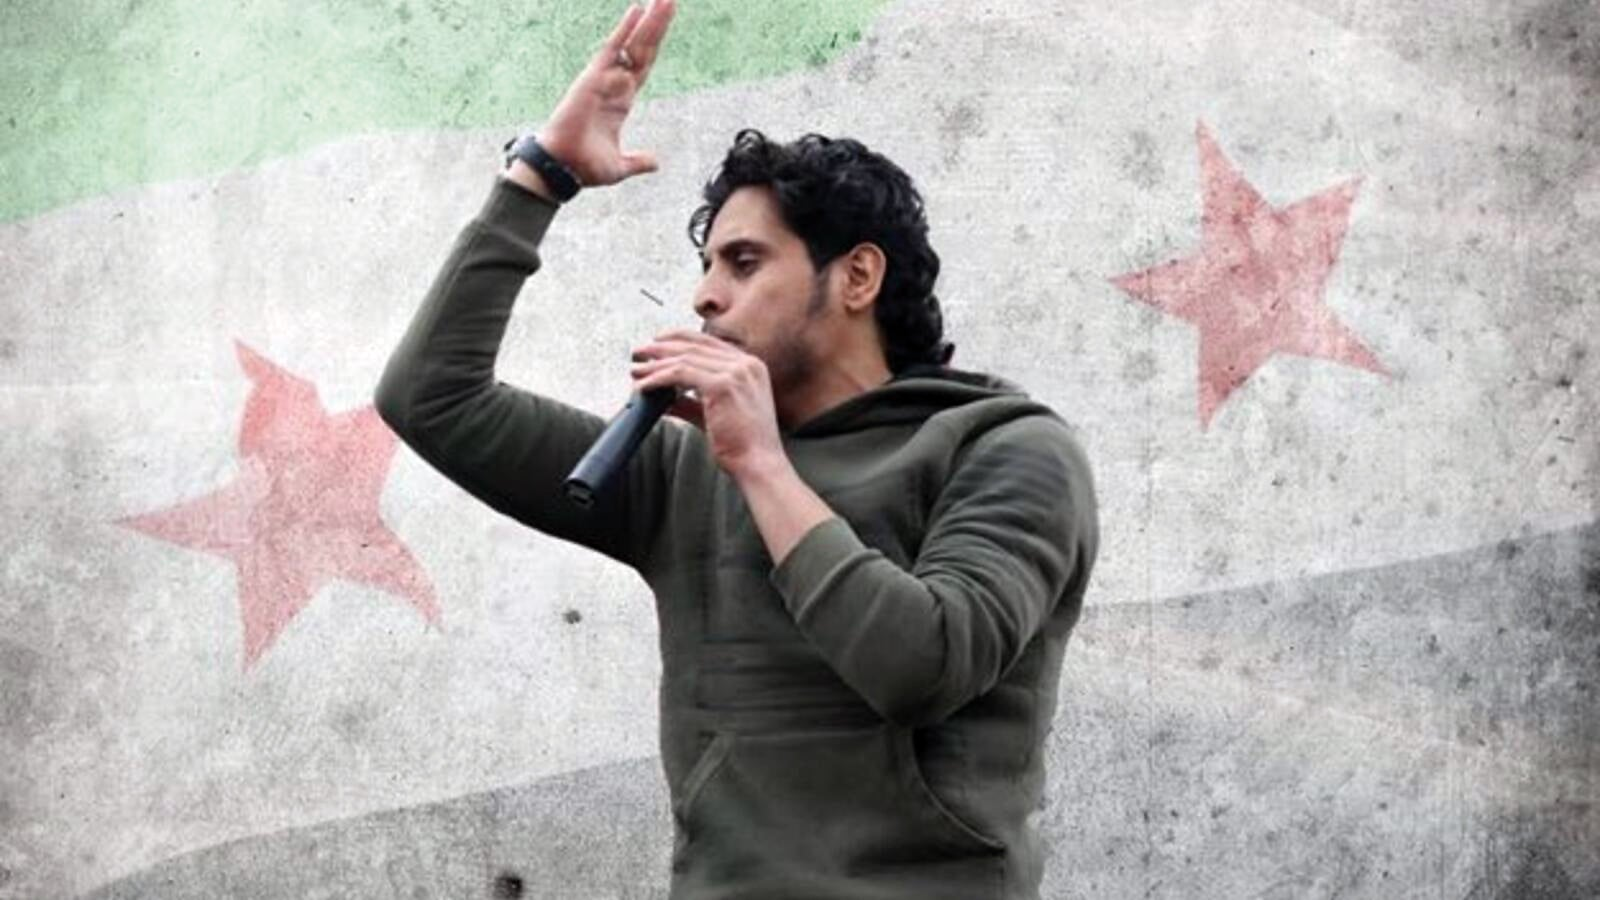 The death of Abdul Baset Sarout, Syria's singing soldier